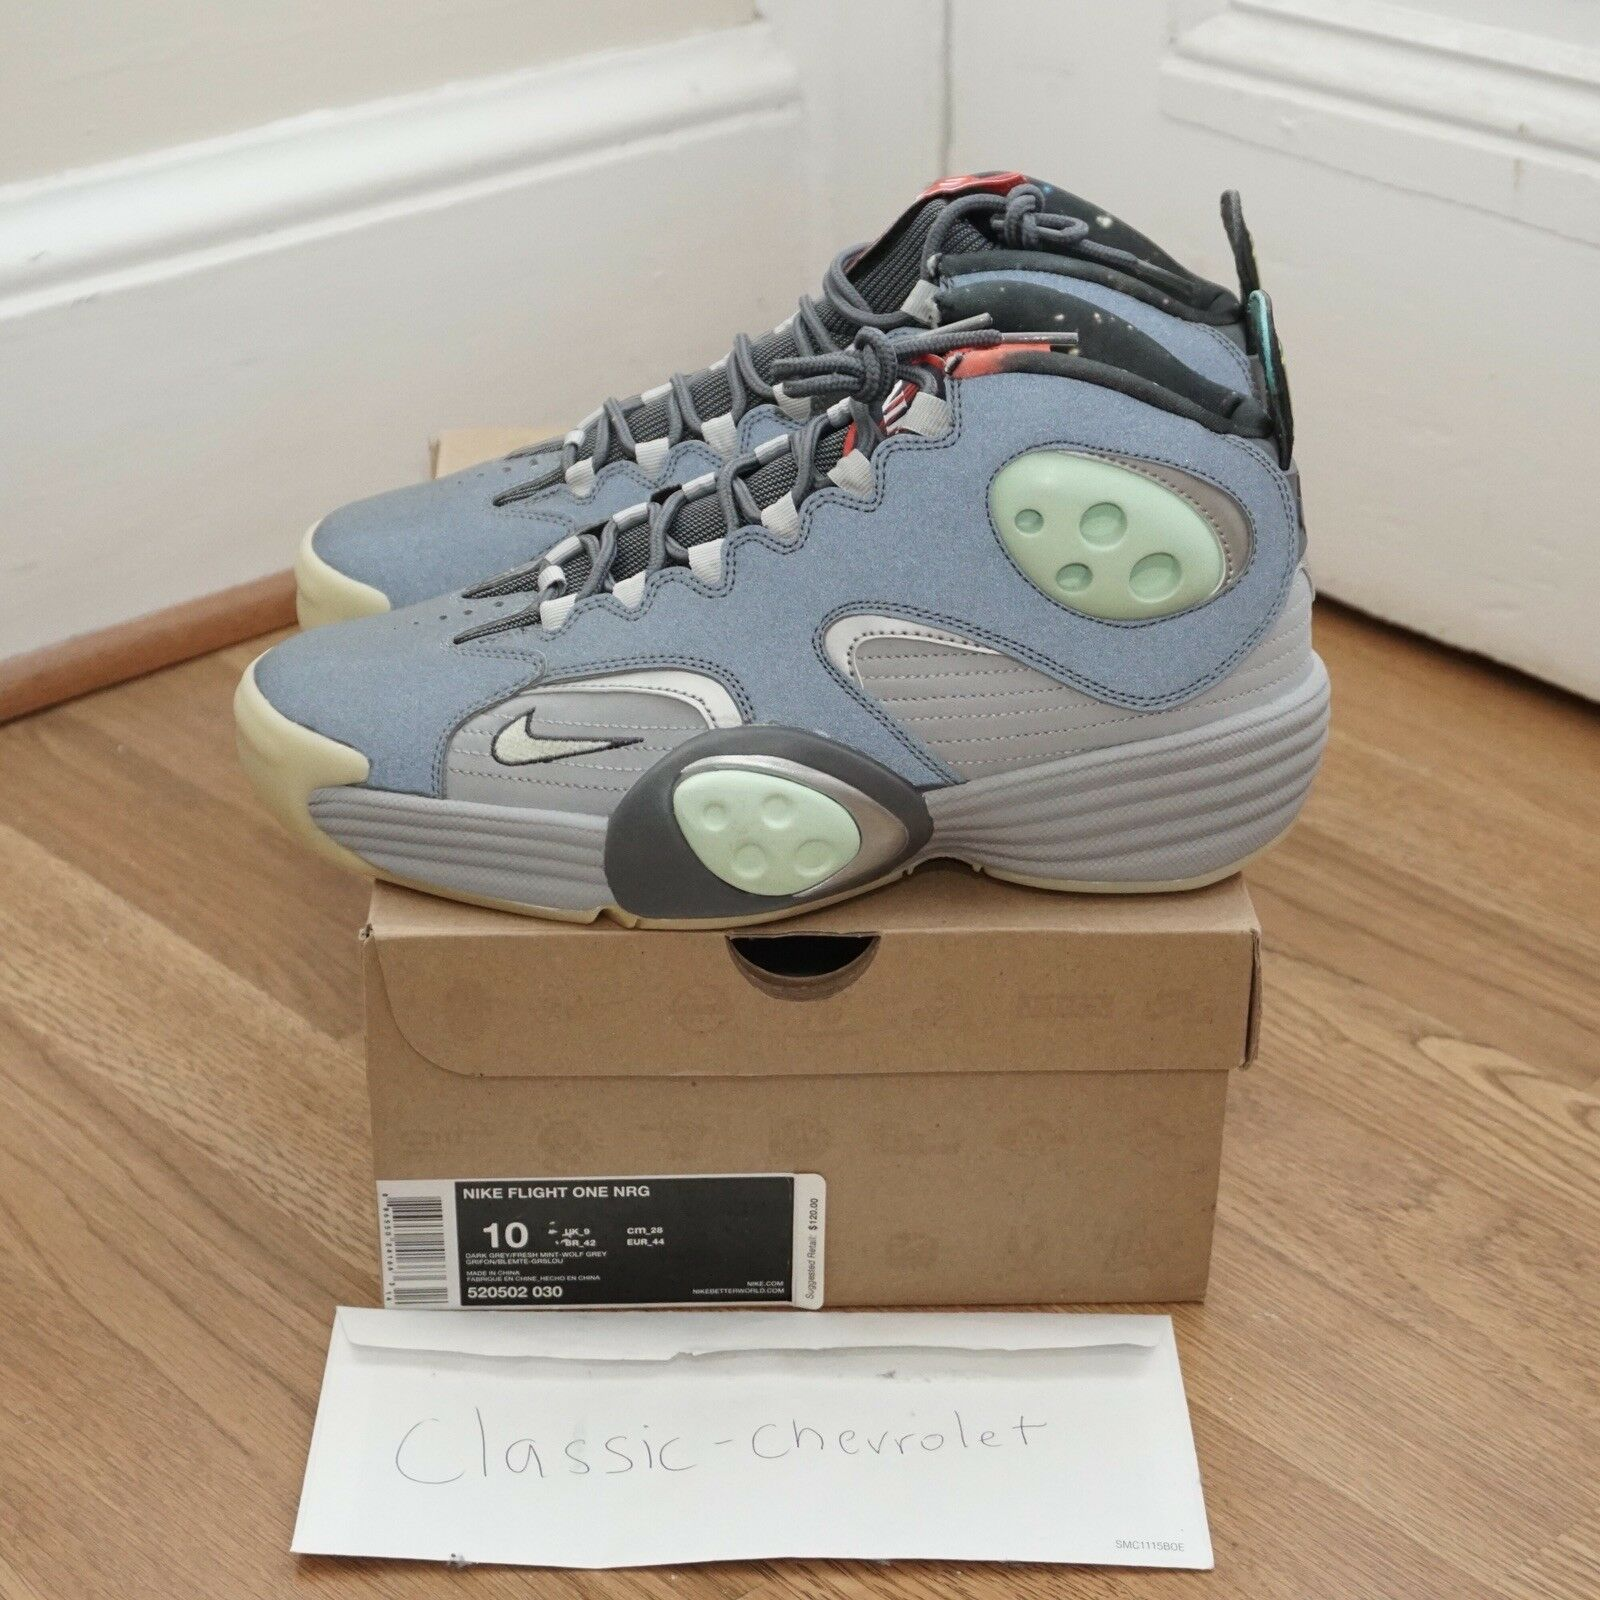 2012 Nike Air Flight ONE 1 NRG Penny DS Galaxy ALL-STAR Glow 520502-030 DS Penny 10 0c96de